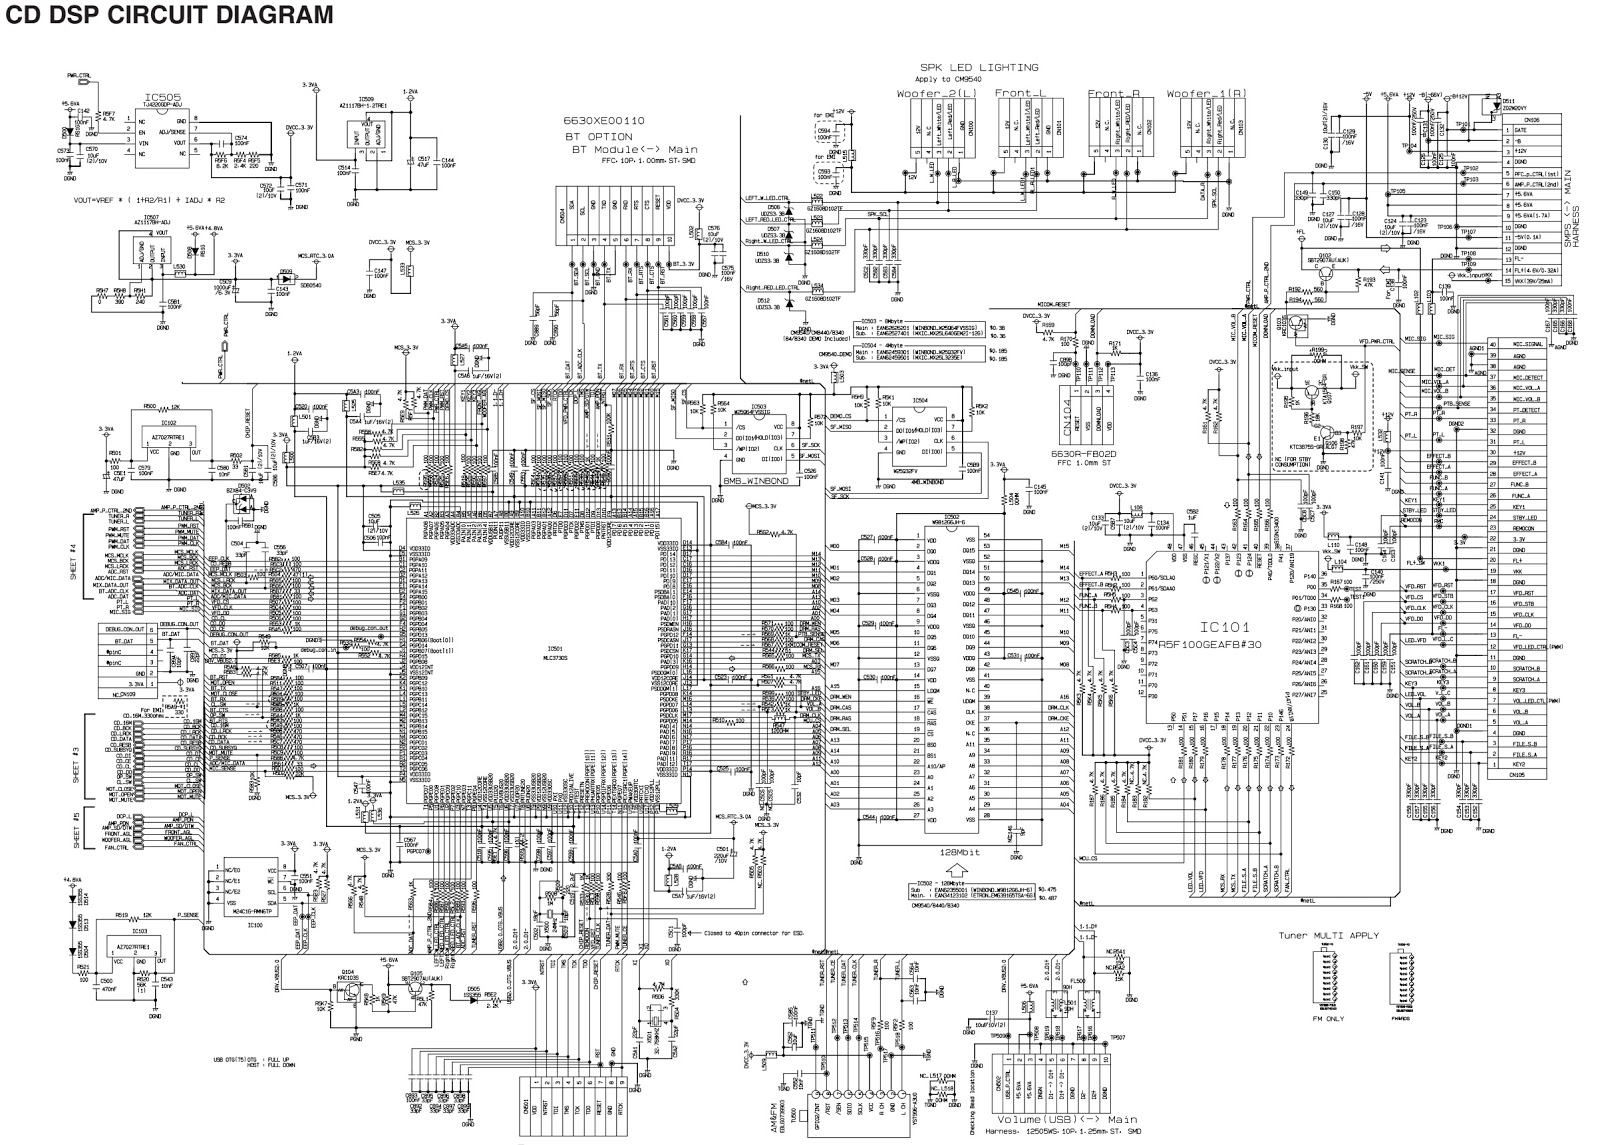 Lg Cm8340 Smps And Power Amplifier Circuit Diagram Software Update Program Download